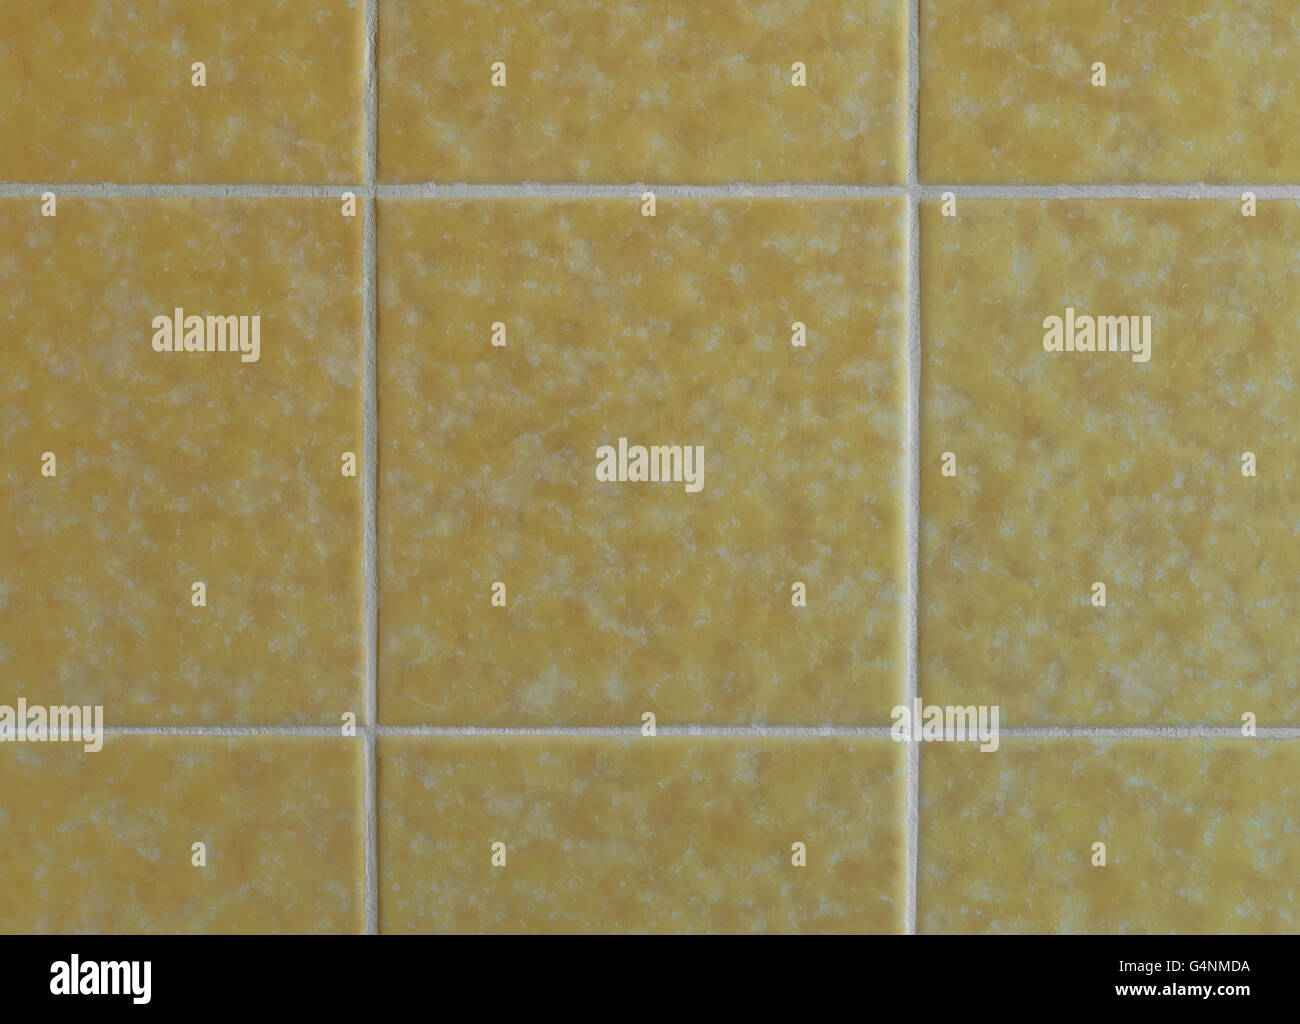 Nostalgic yellow wall tiles from the seventies - Stock Image